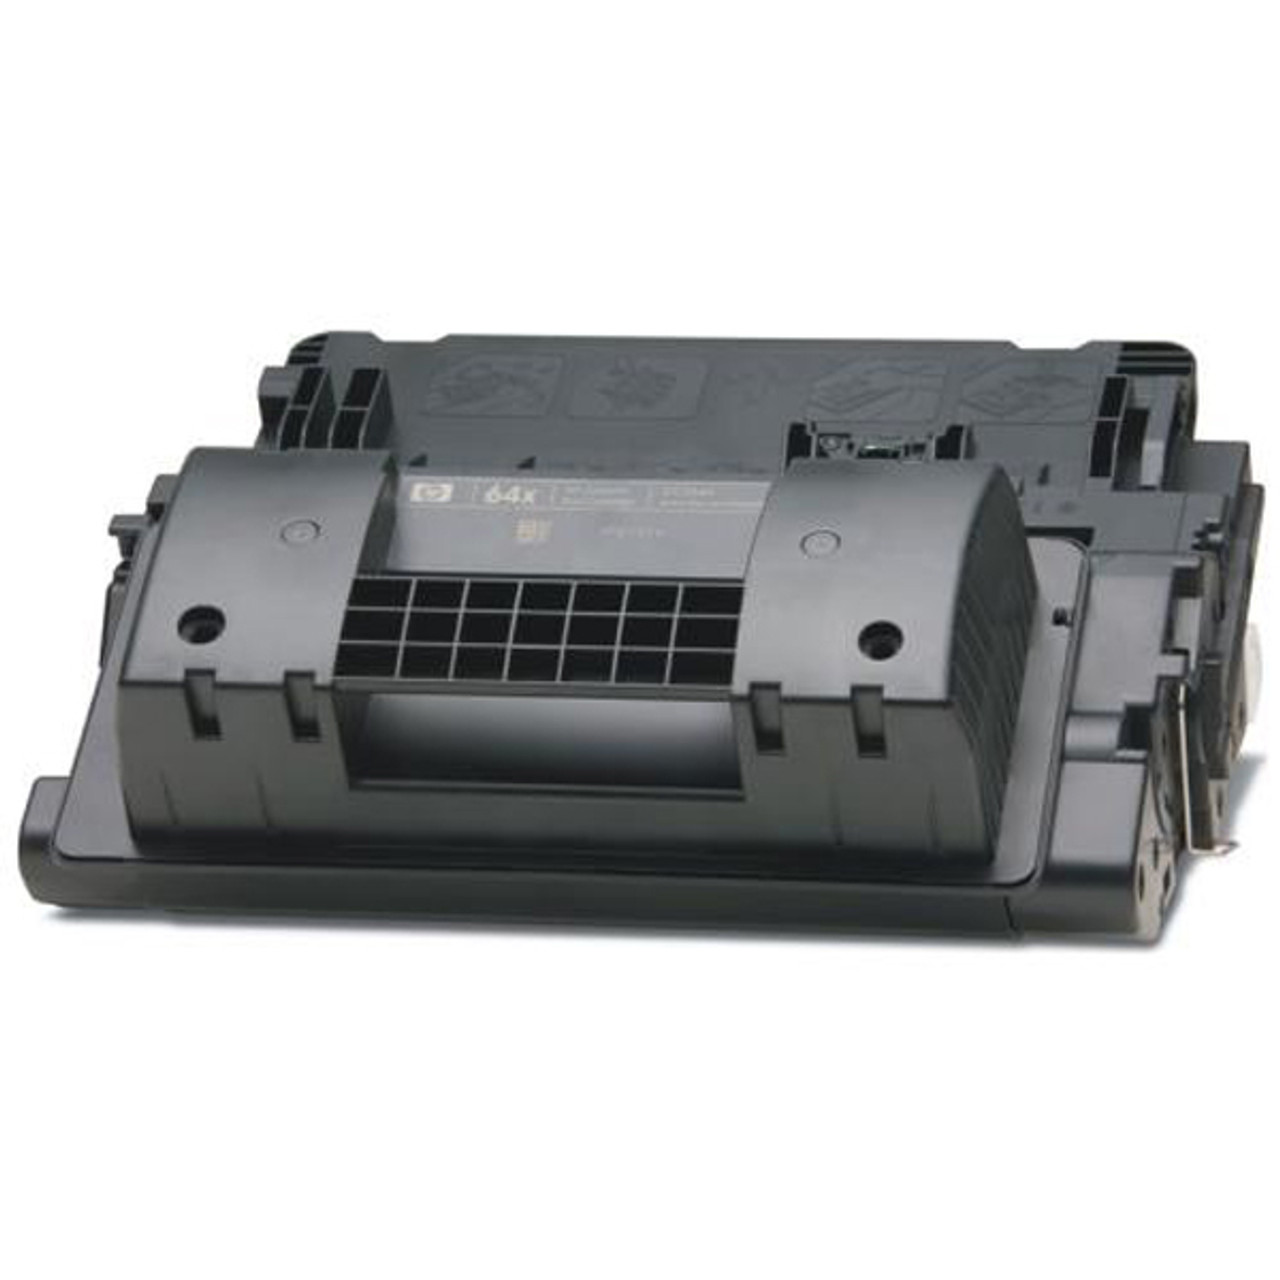 HP P4015 P4515 Regular Yield Toner Cartridge - New compatible